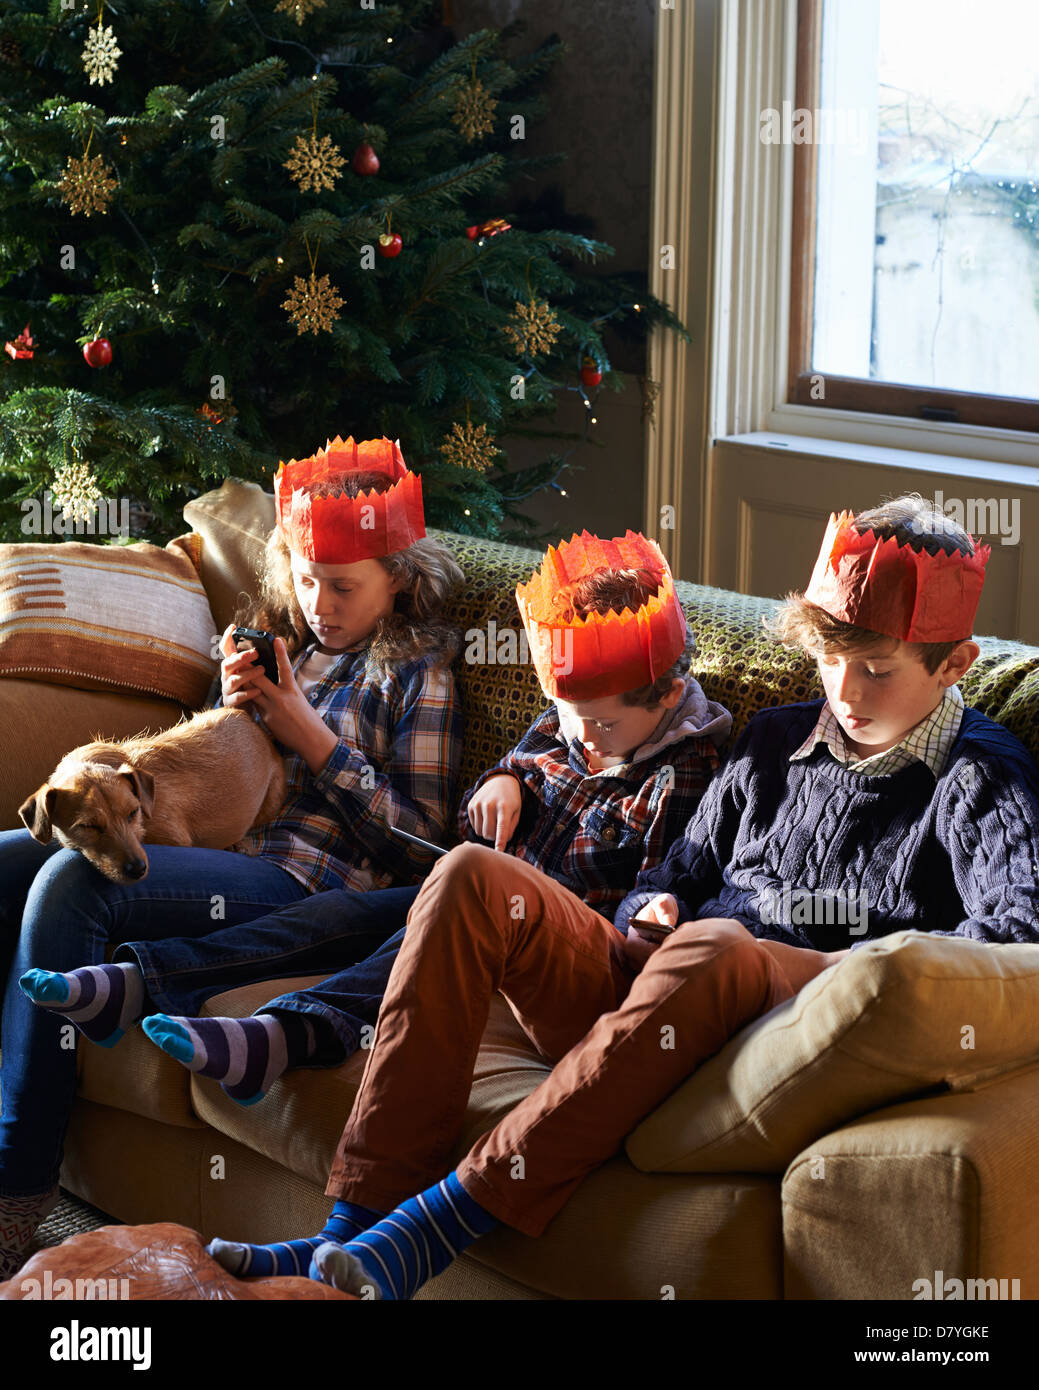 Children in paper crowns relaxing on sofa - Stock Image